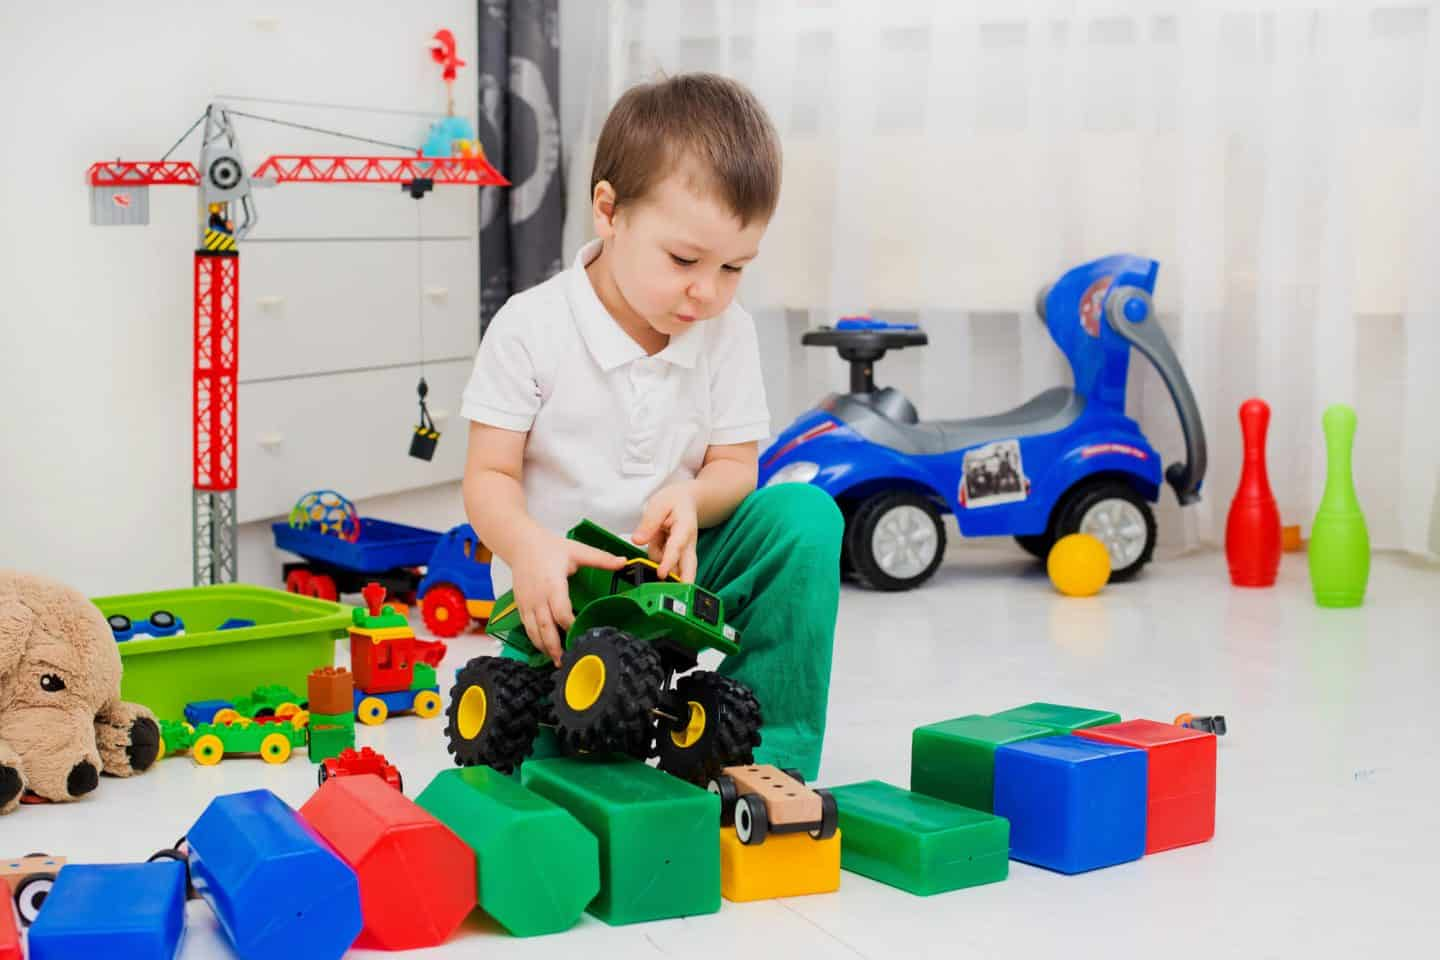 The Best Toys for Your Child's Development